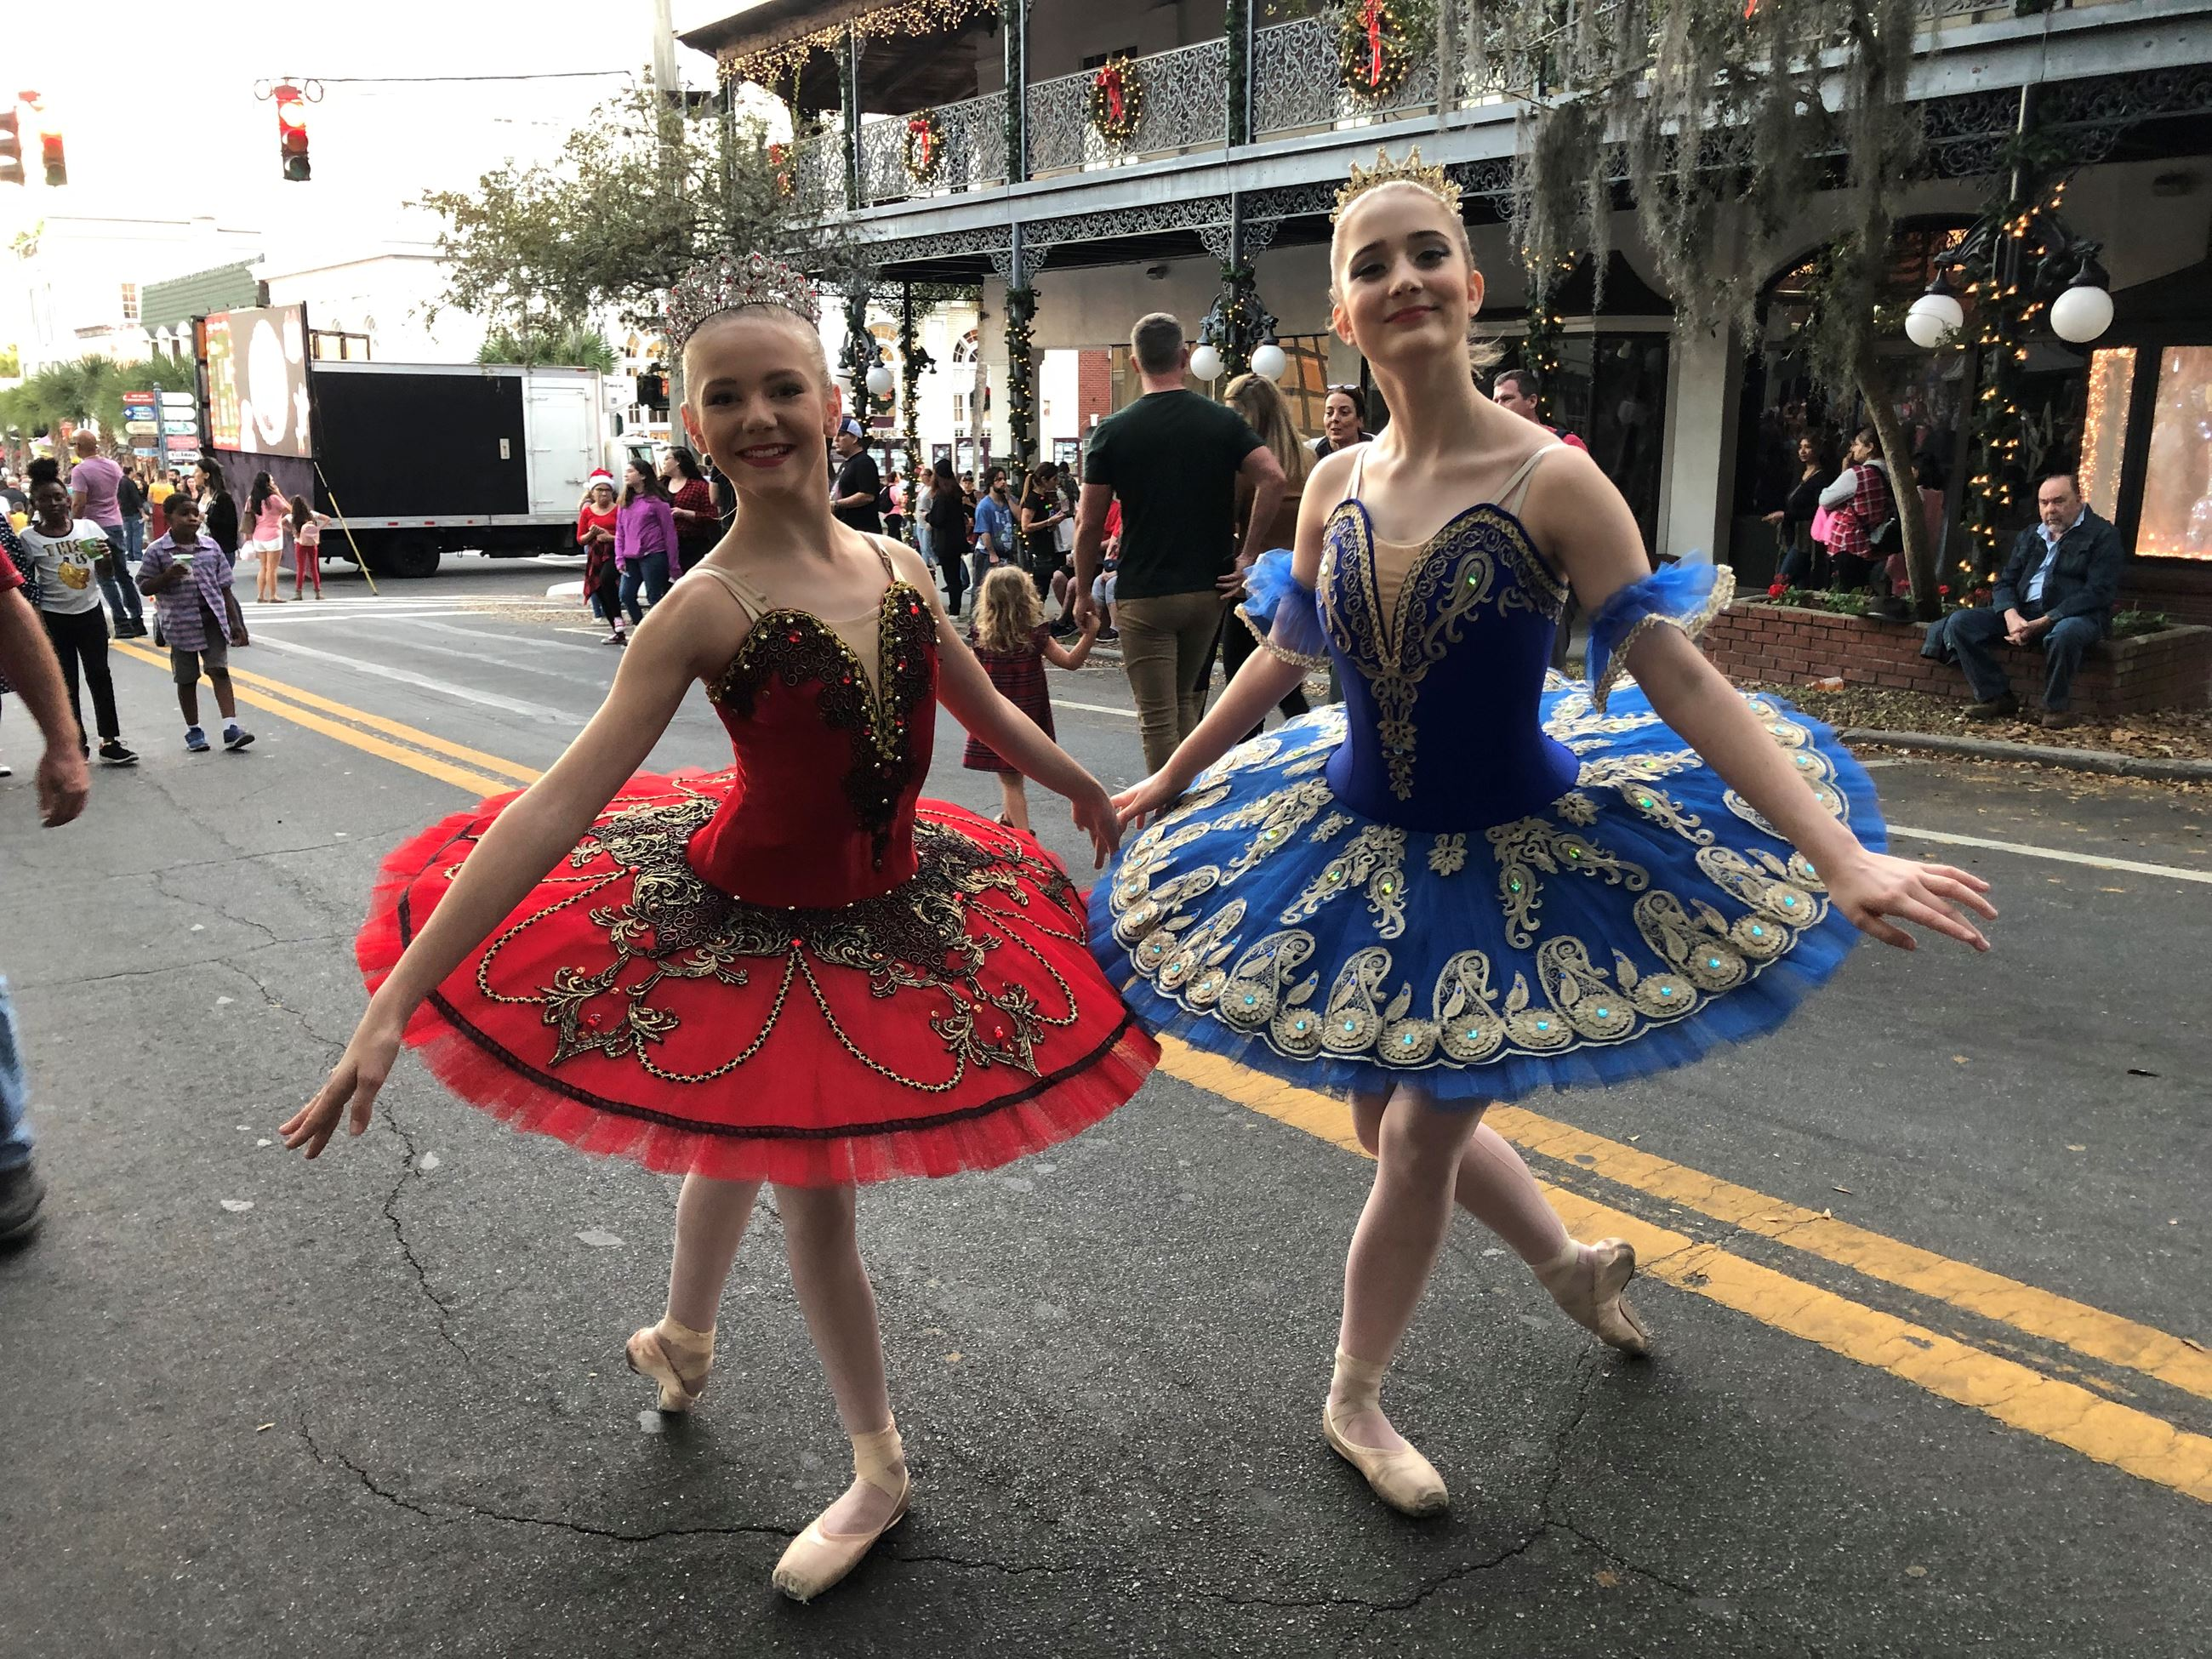 Nutcracker Ballerinas in the street